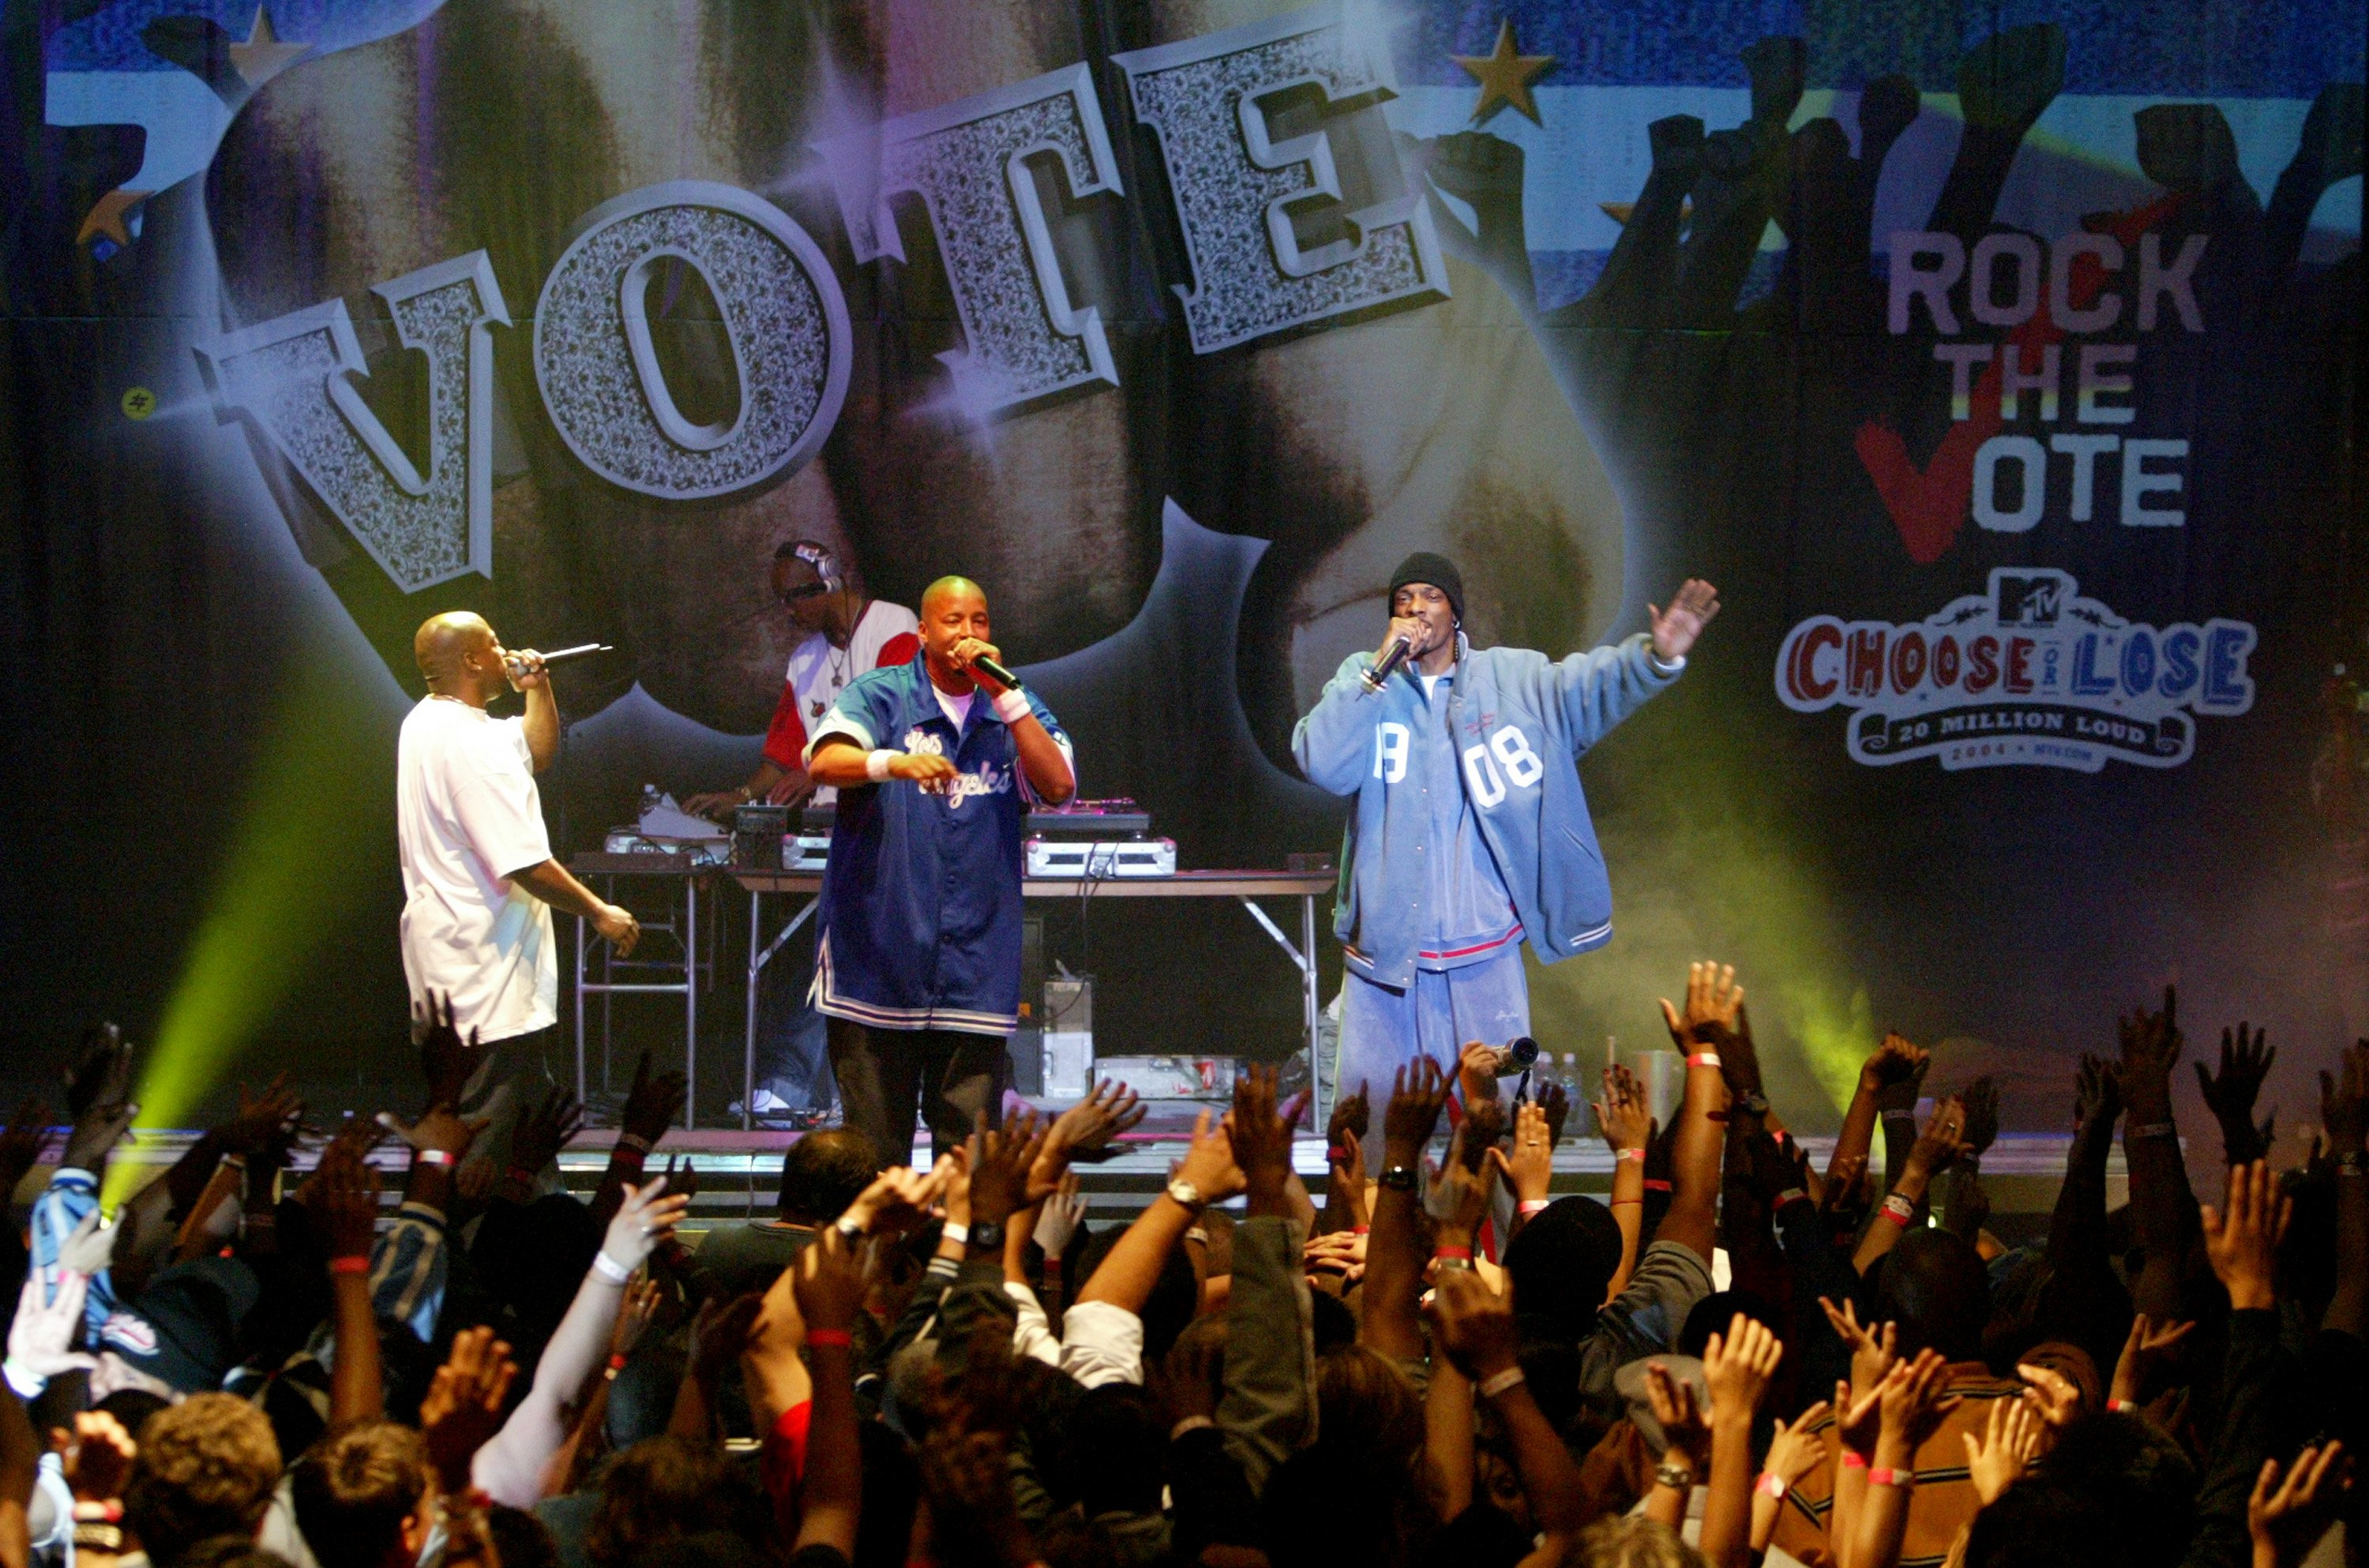 HOLLYWOOD - JUNE 16: (US TABS AND HOLLYWOOD REPORTER OUT) Members of 213, Nate Dogg, Warren G and Snoop Dogg perform during the Rock The Vote Bus Tour Launch Concert on June 16, 2004 at the Avalon in Hollywood, California. (Photo by Vince Bucci/Getty Images)